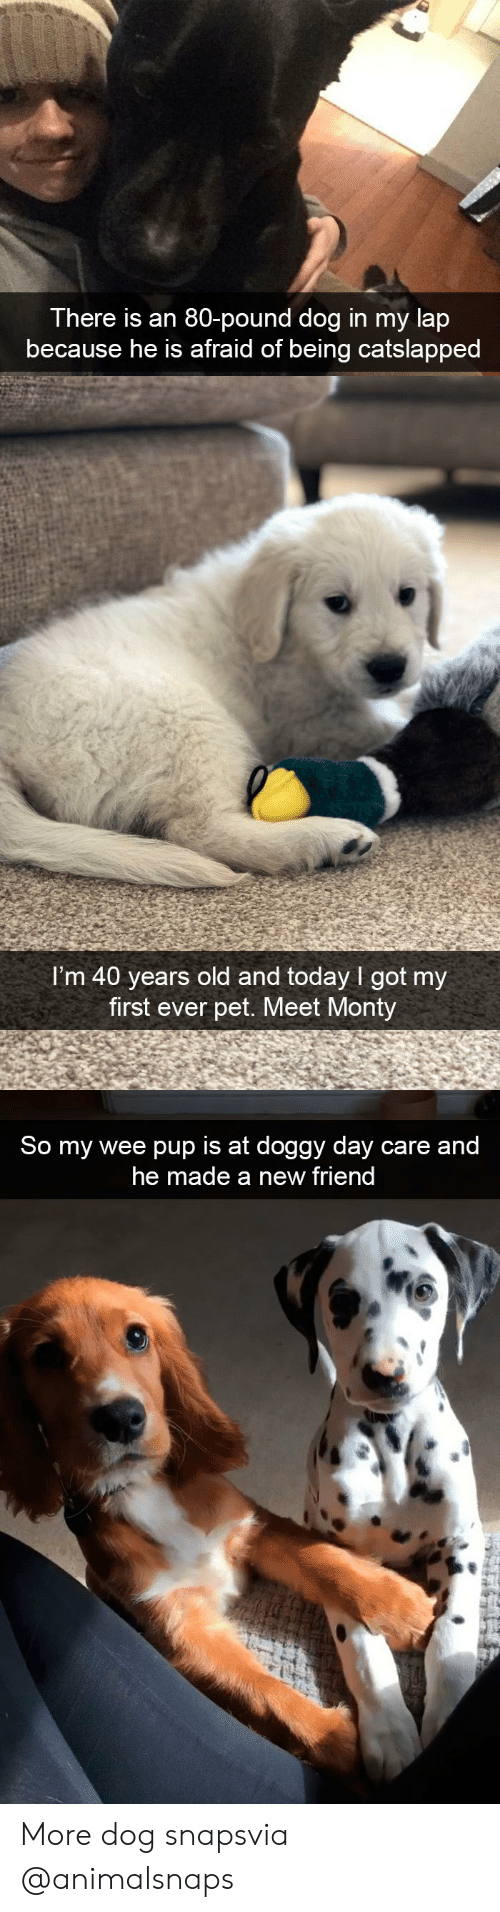 Target, Tumblr, and Wee: There is an 80-pound dog in my lap  because he is afraid of being catslapped   I'm 40 years old and today I got my  first ever pet. Meet Monty   So my wee pup is at doggy day care and  he made a new friend More dog snapsvia @animalsnaps​